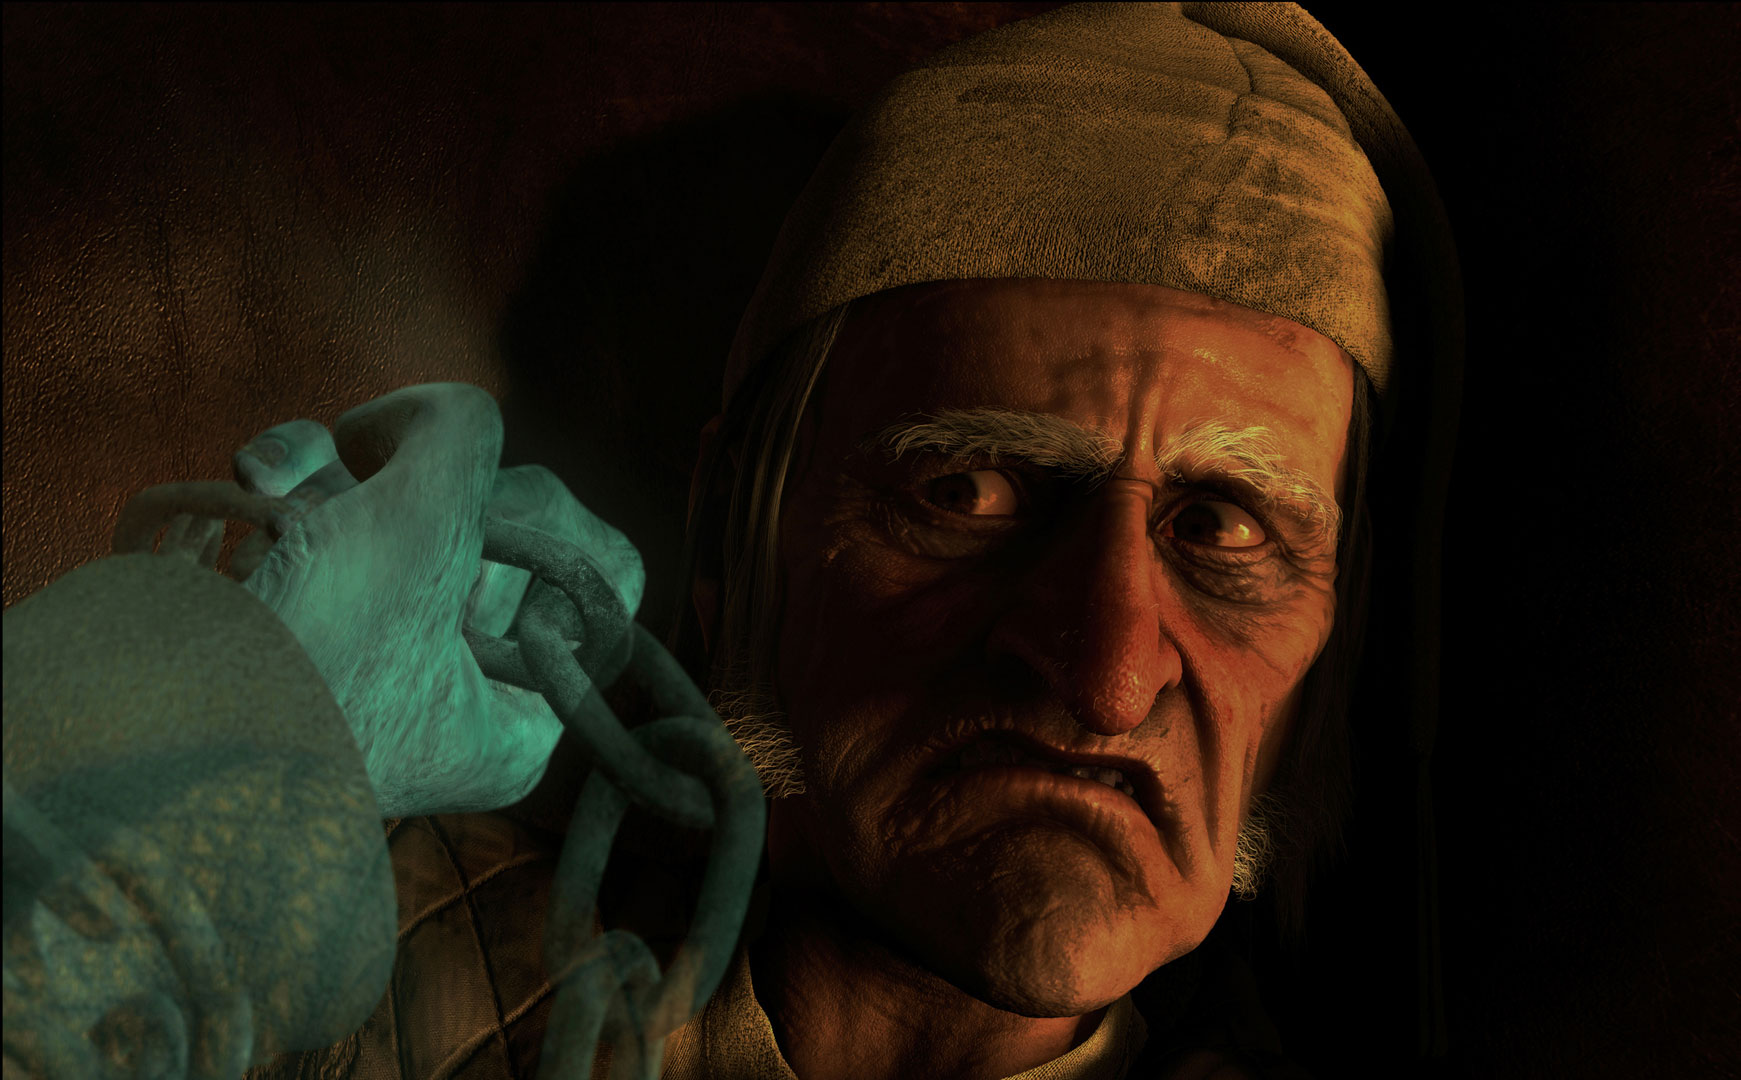 Christmas Carol Scrooge And Marley.Disney S A Christmas Carol Zombies Not Ghosts Of